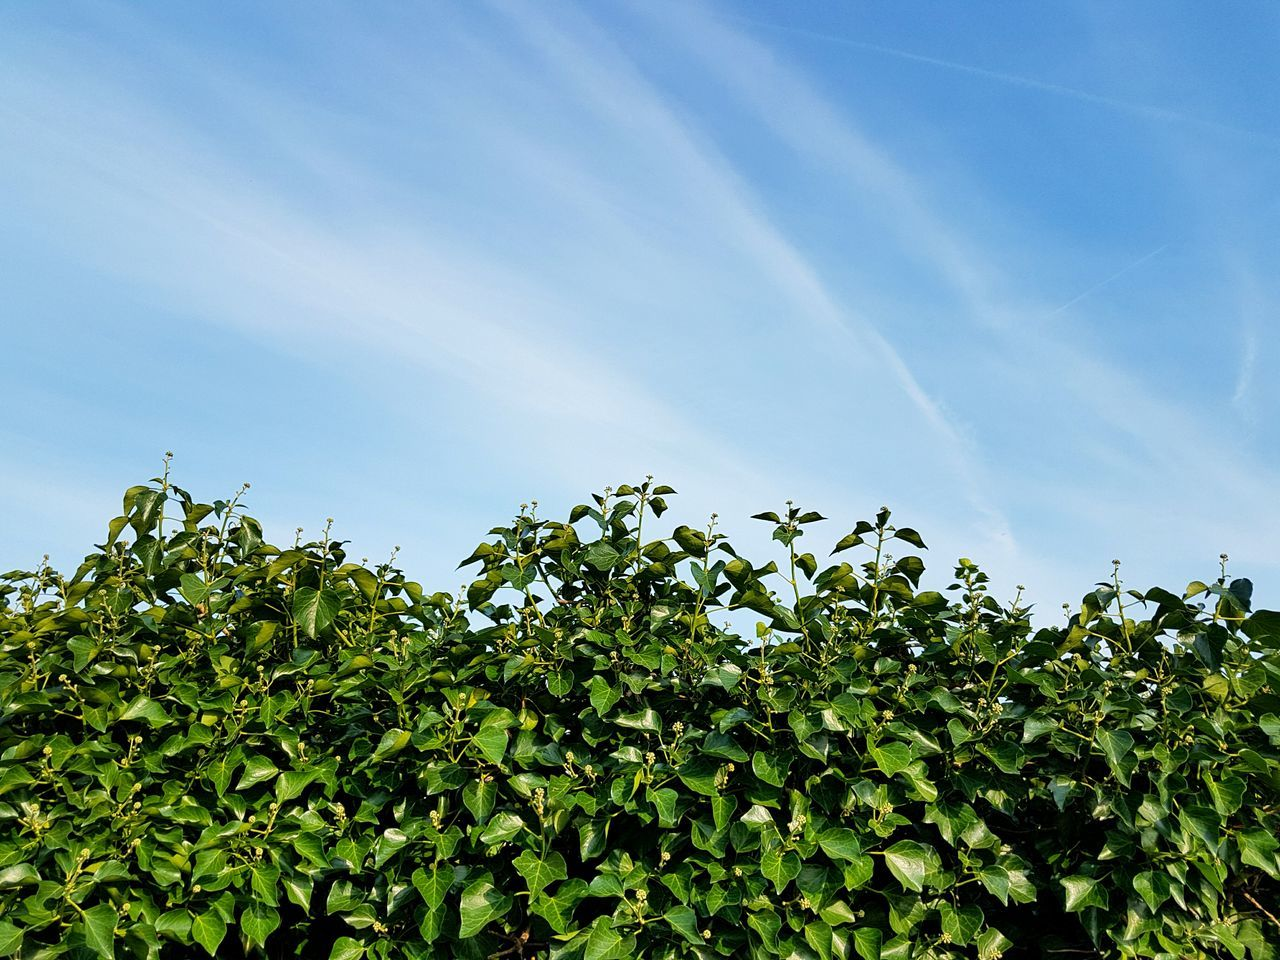 growth, nature, low angle view, plant, leaf, day, beauty in nature, tree, no people, outdoors, green color, sky, freshness